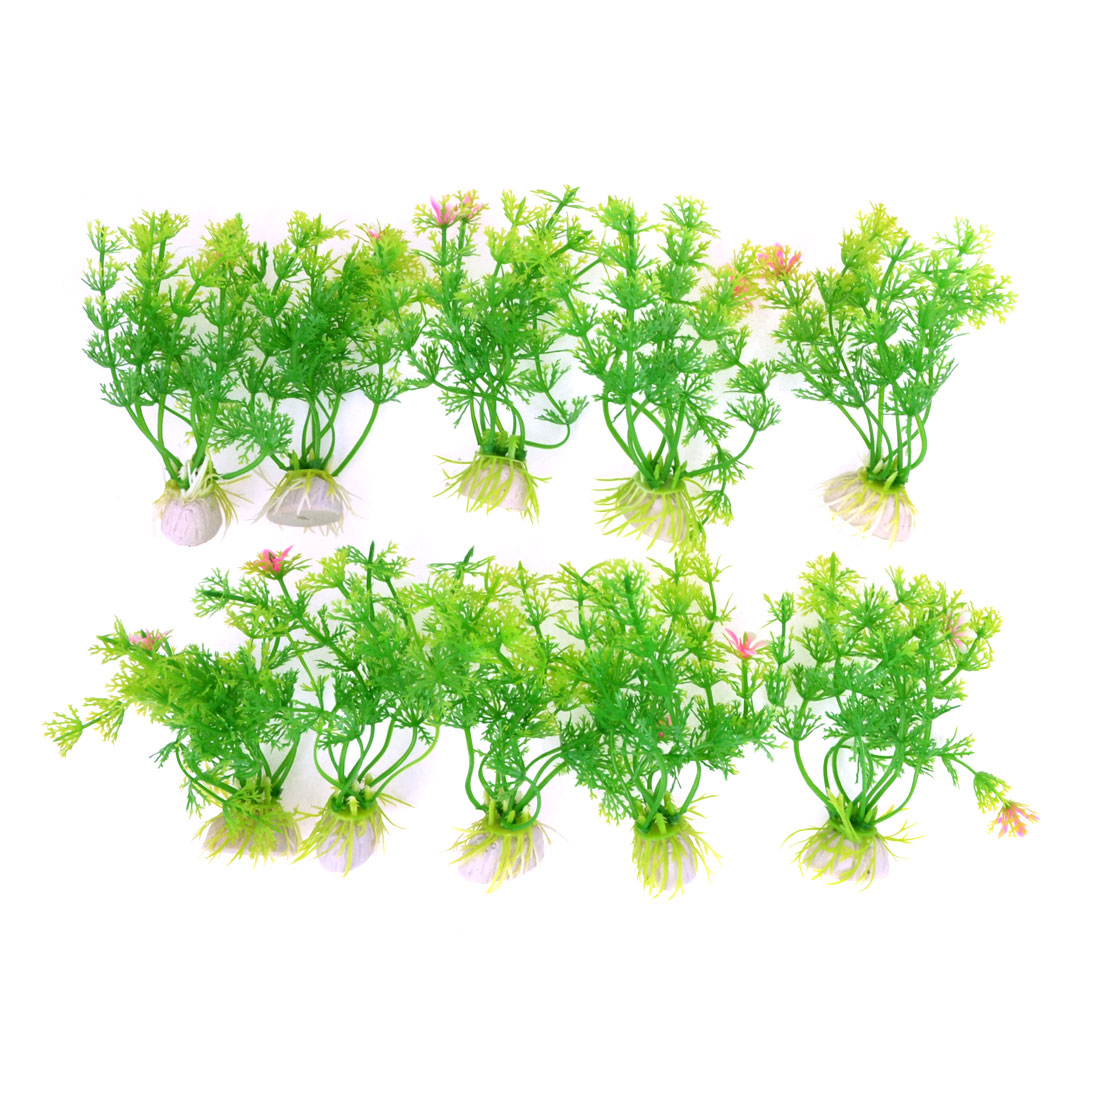 "Aquarium Tanks Decor Green Plastic Emulational Aquaric Plant Grass 3.9"" 10pcs"